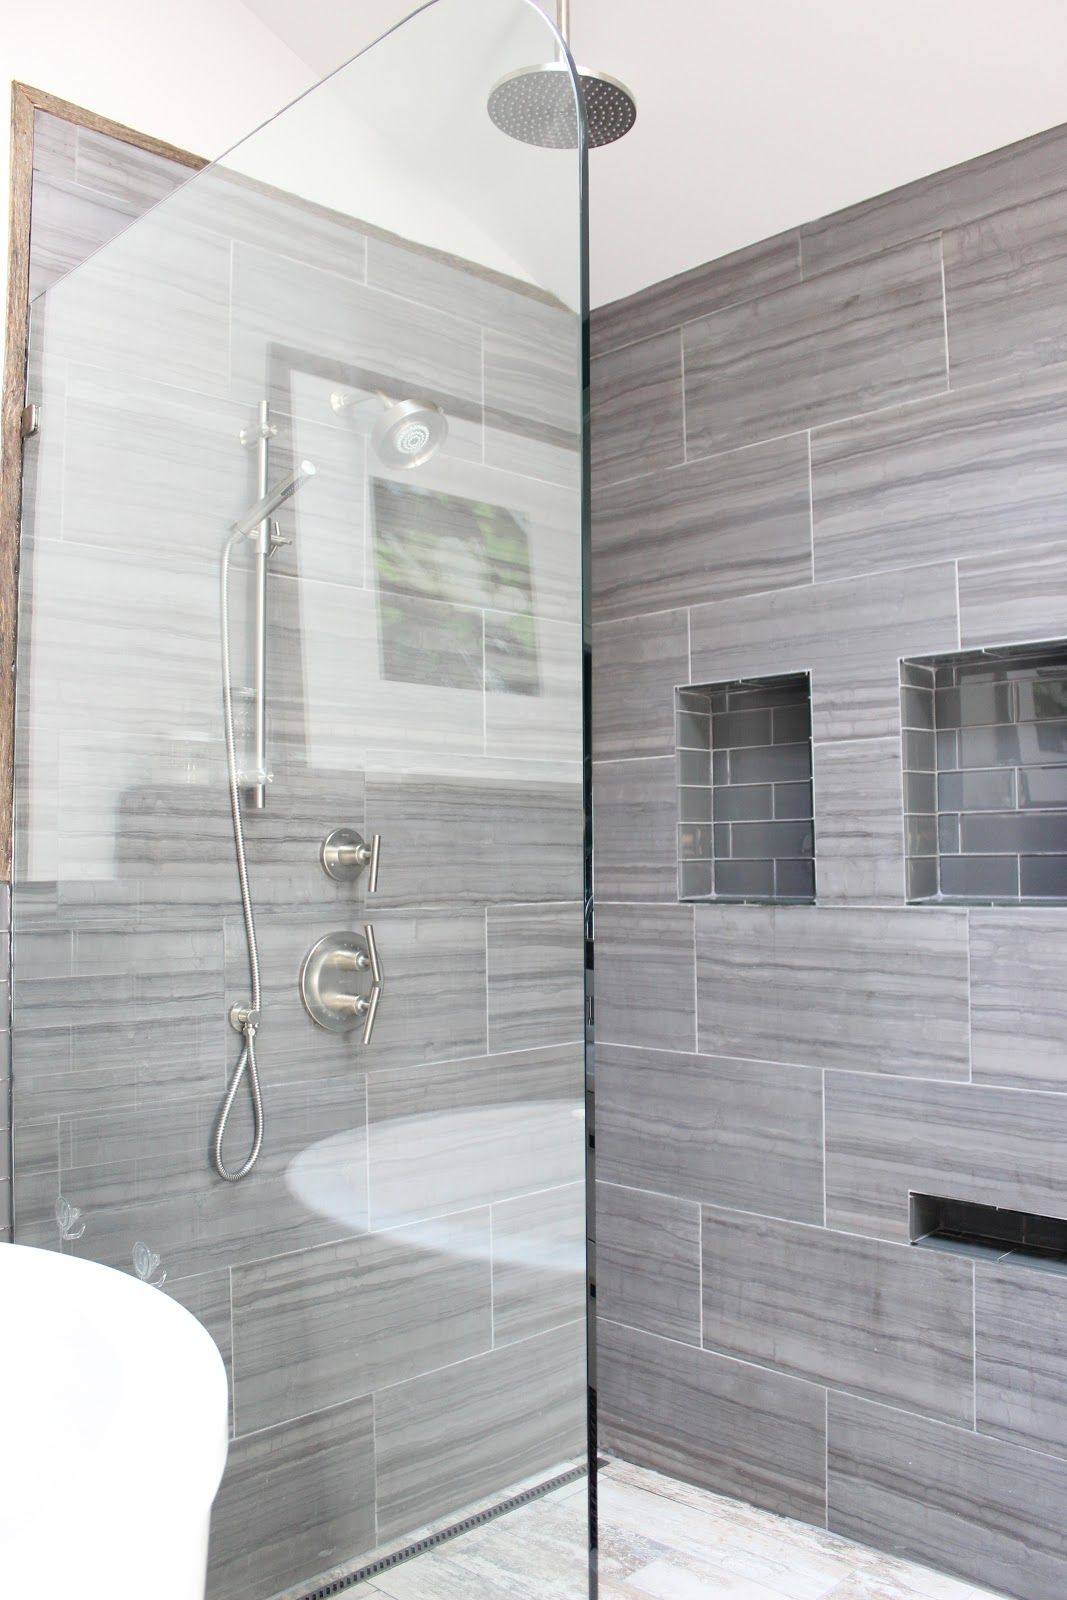 12x24 Tile On Pinterest Vertical Shower Tile Porcelain Floor And Shower Niche